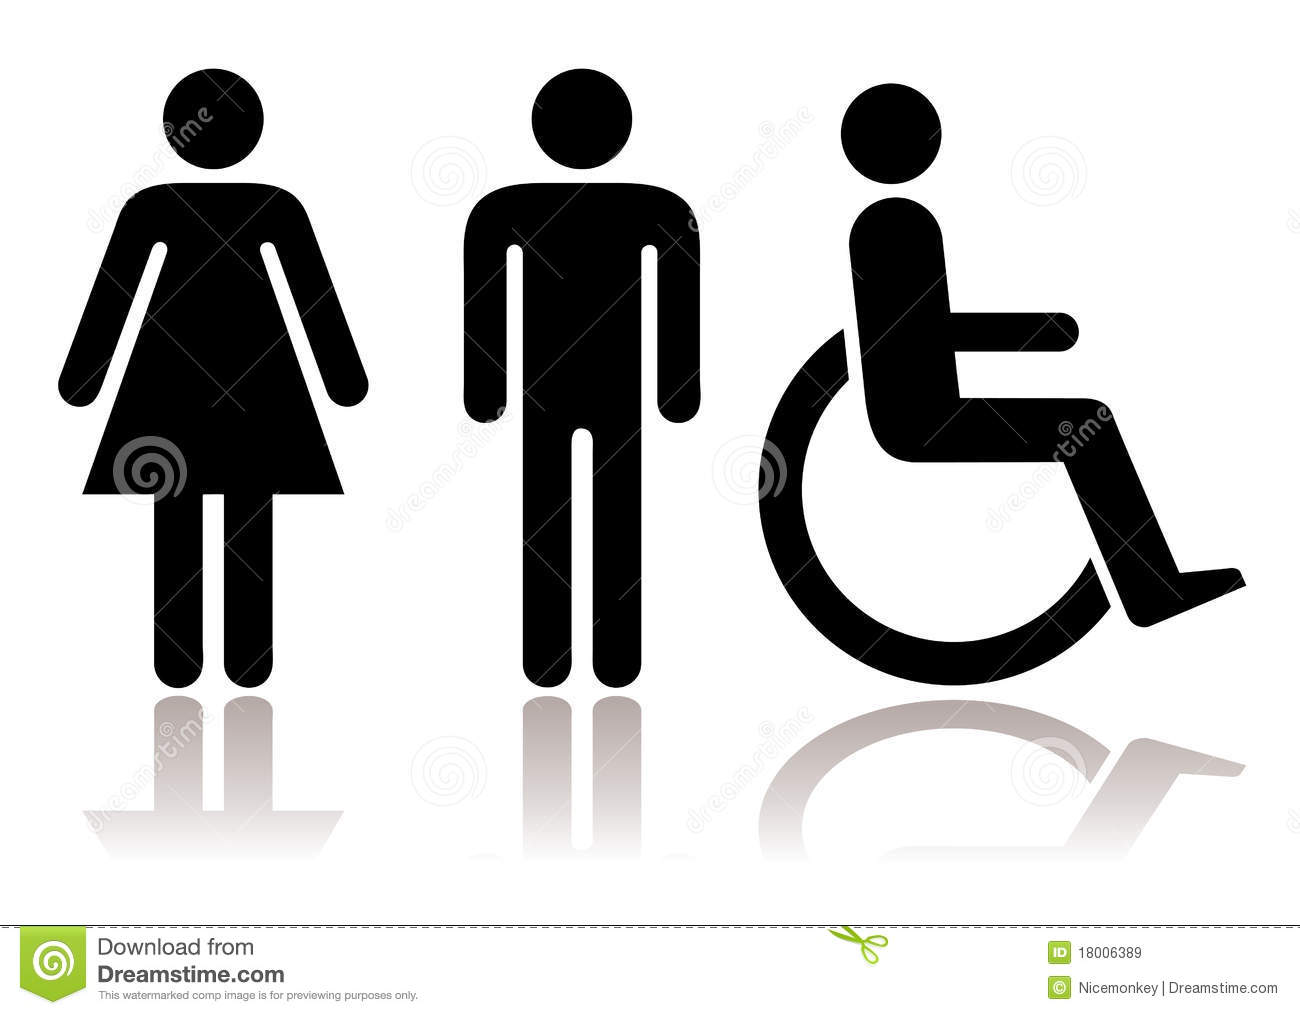 Toilet Symbols Disabled Royalty Free Stock Images - Image: 18006389